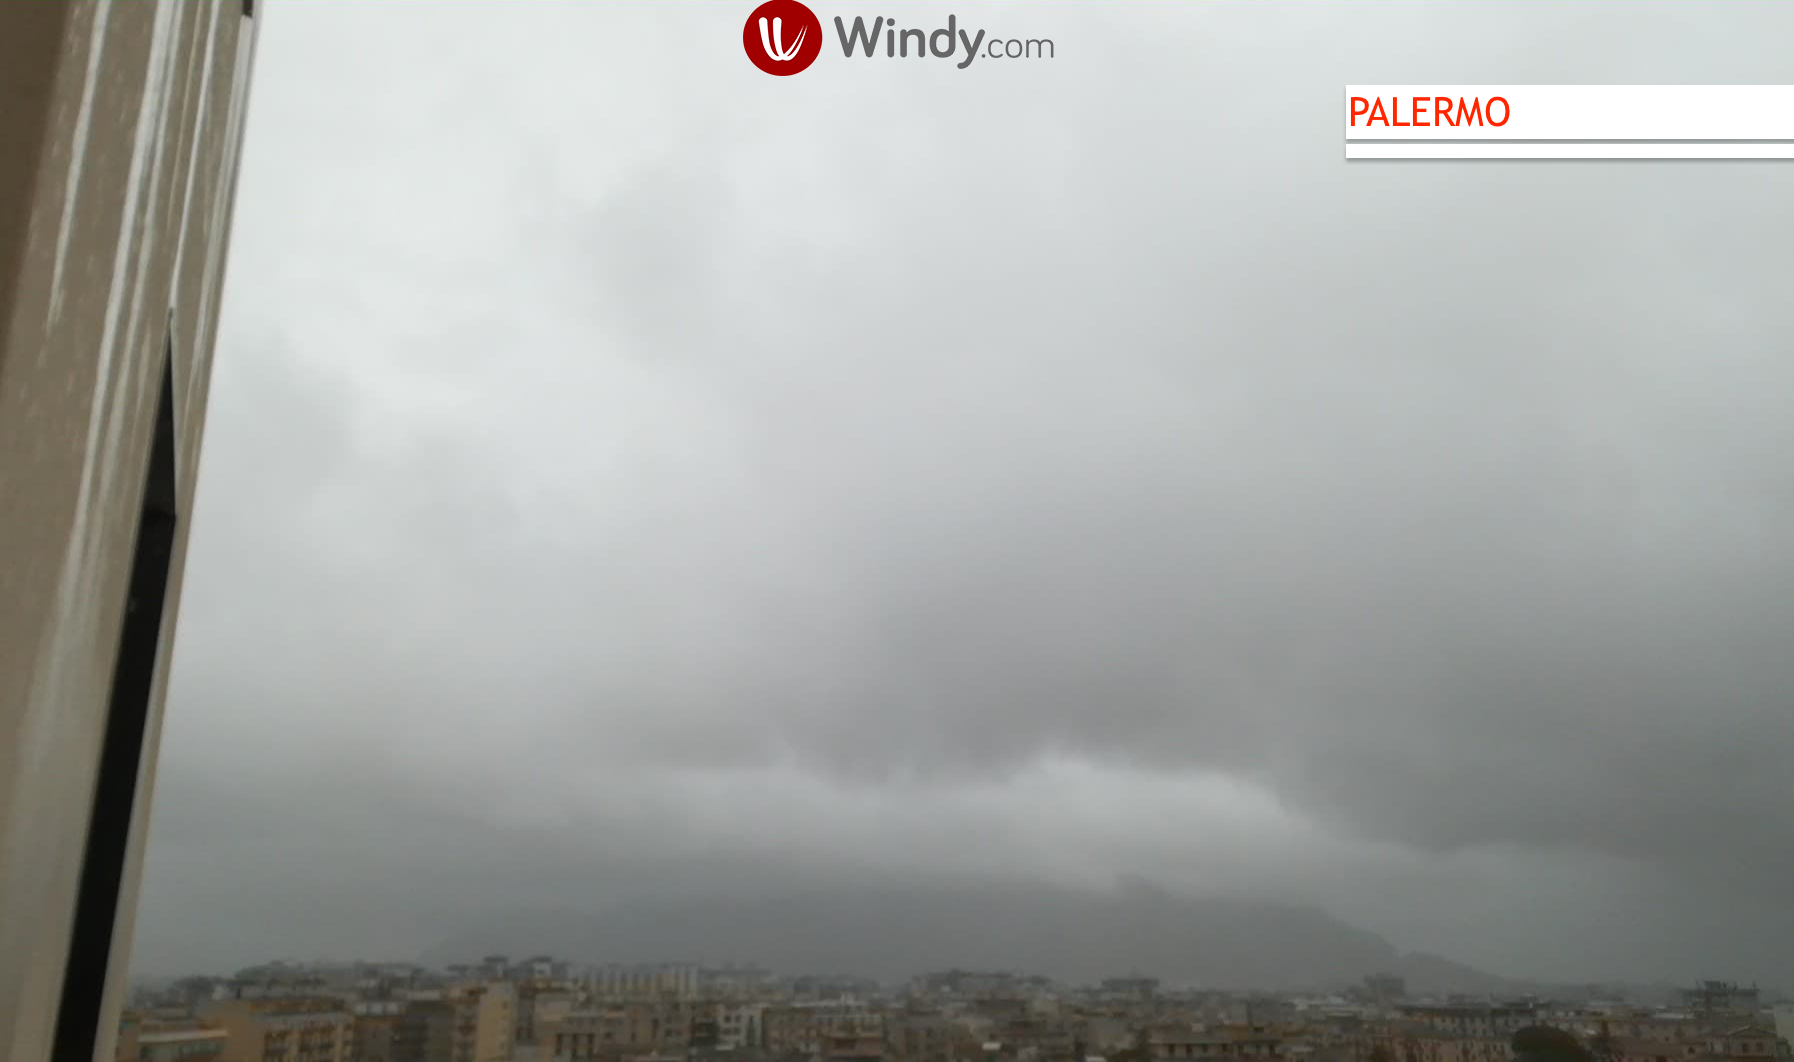 Photo: by Windy.com; desc: Situazione Palermo webcam; licence: cc